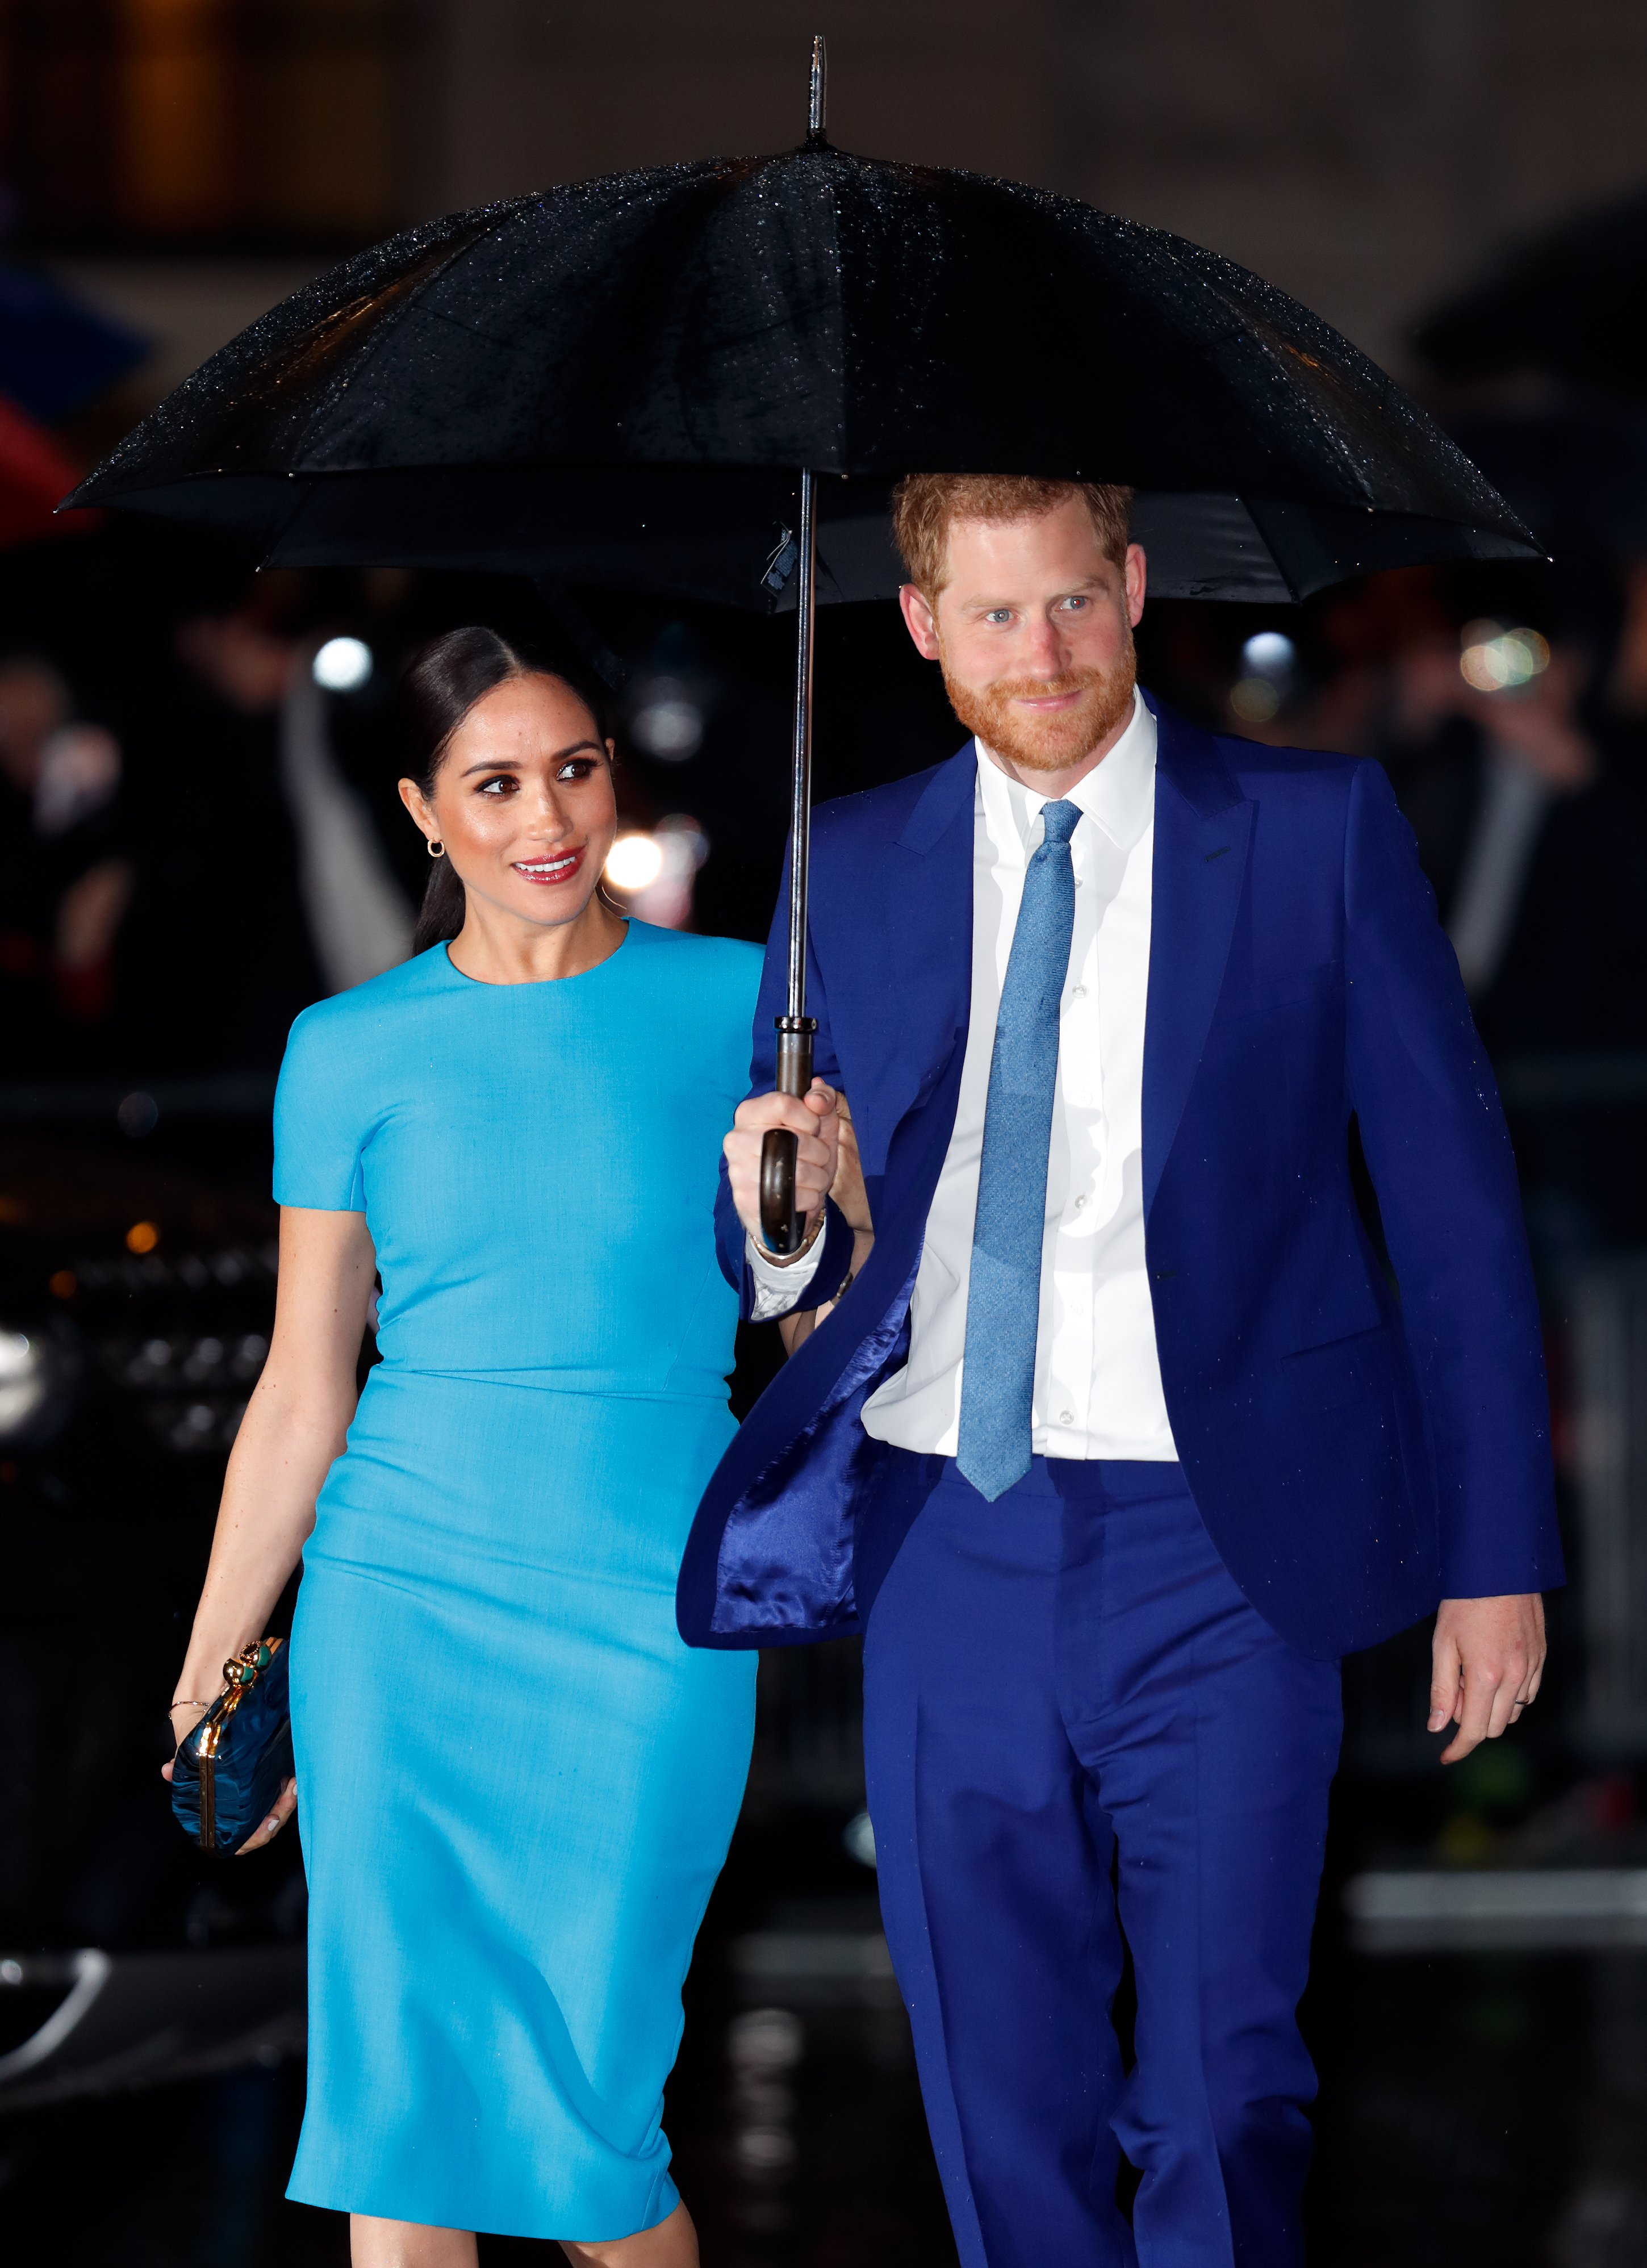 Meghan, Duchess of Sussex and Prince Harry, Duke of Sussex attend The Endeavour Fund Awards at Mansion House on March 5, 2020 in London, England | Photo: Getty Images